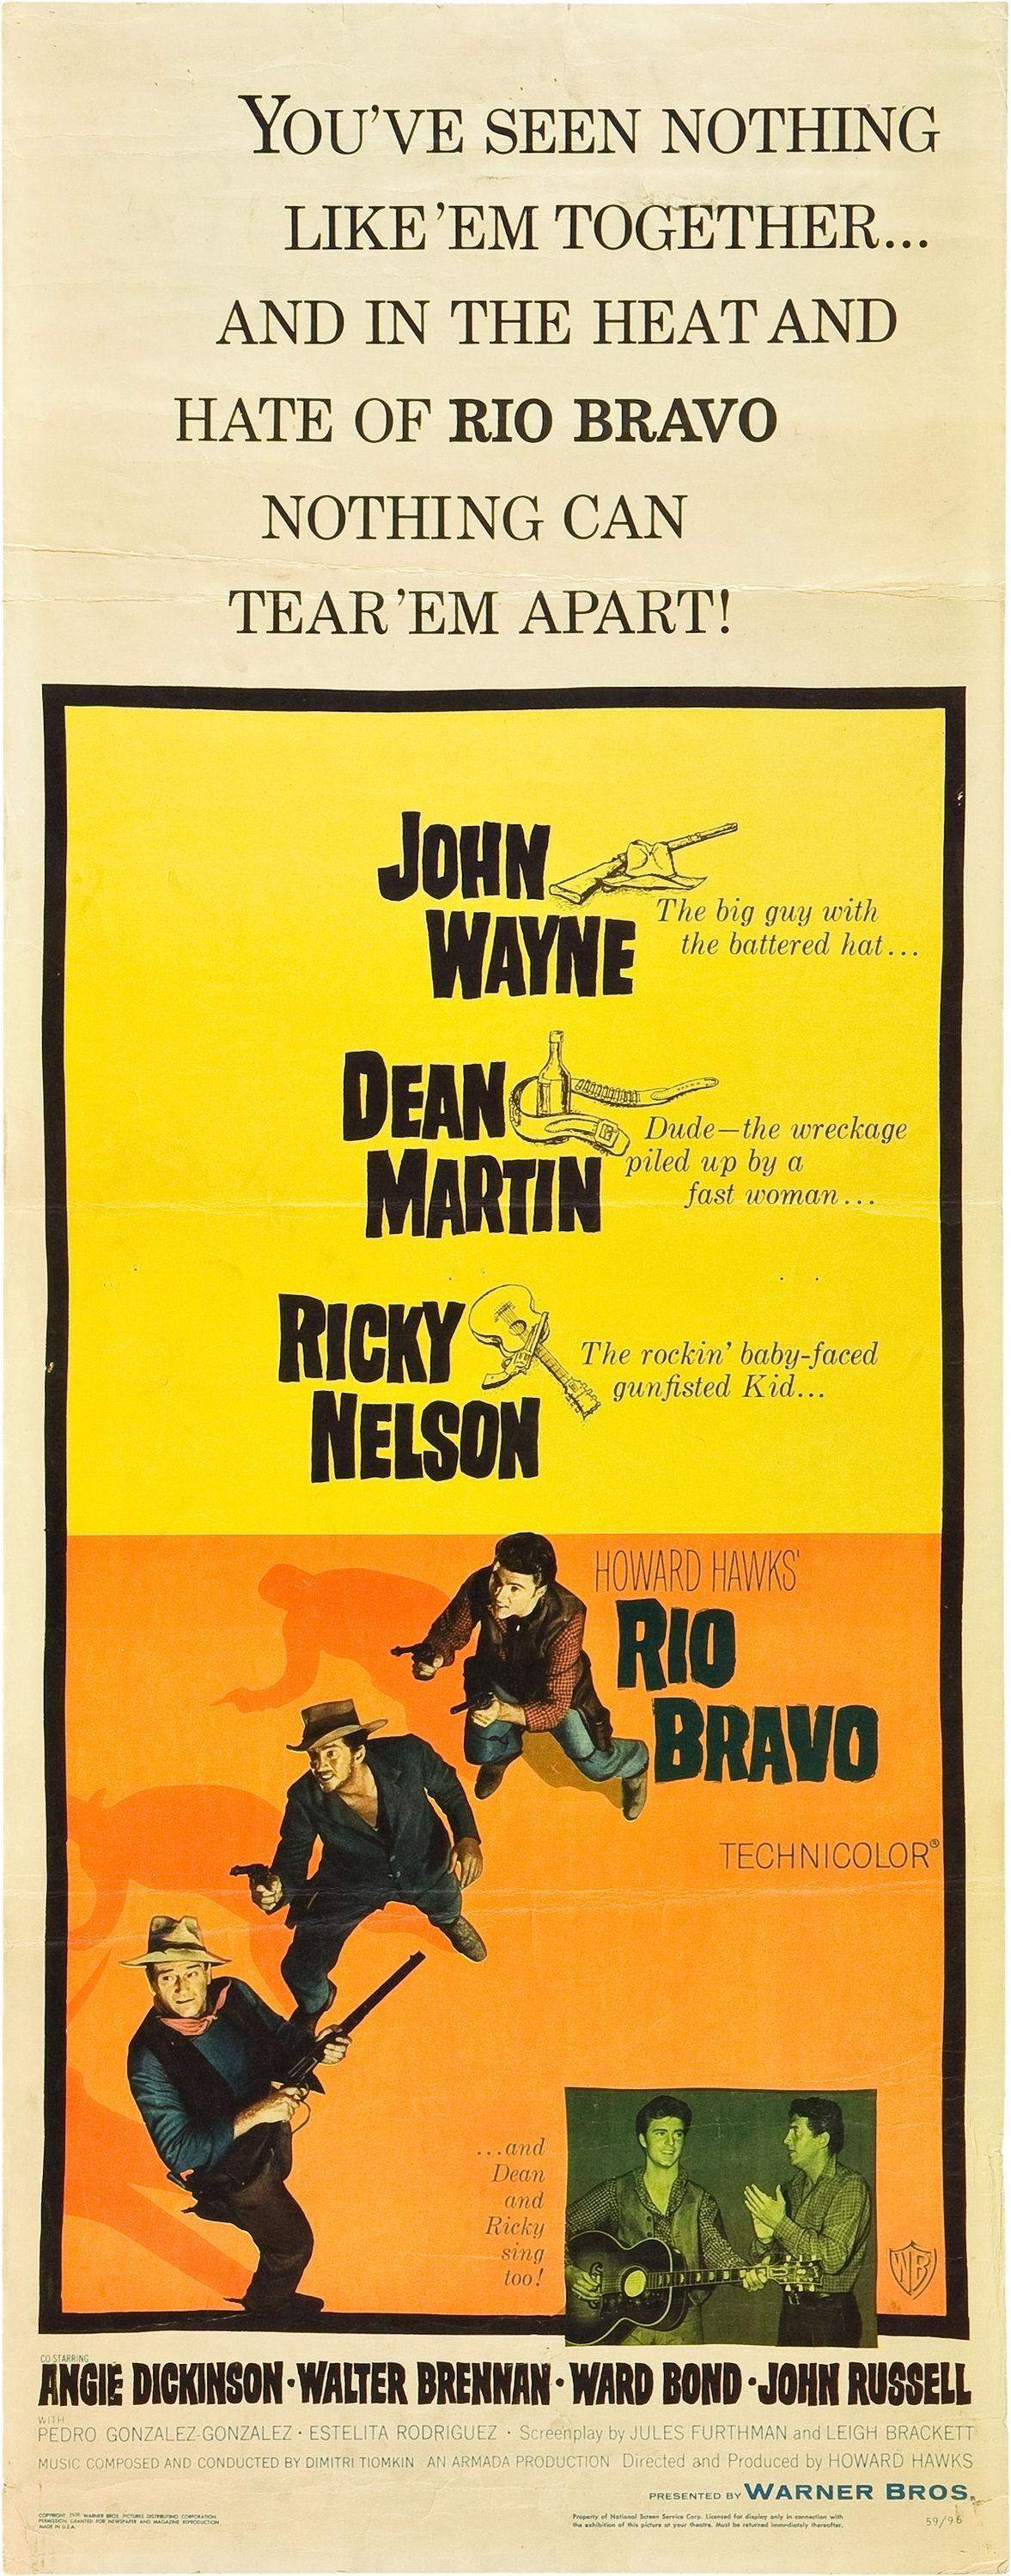 a comparison of spaghetti and macaroni american westerns on the examples of rio bravo by howard hawk